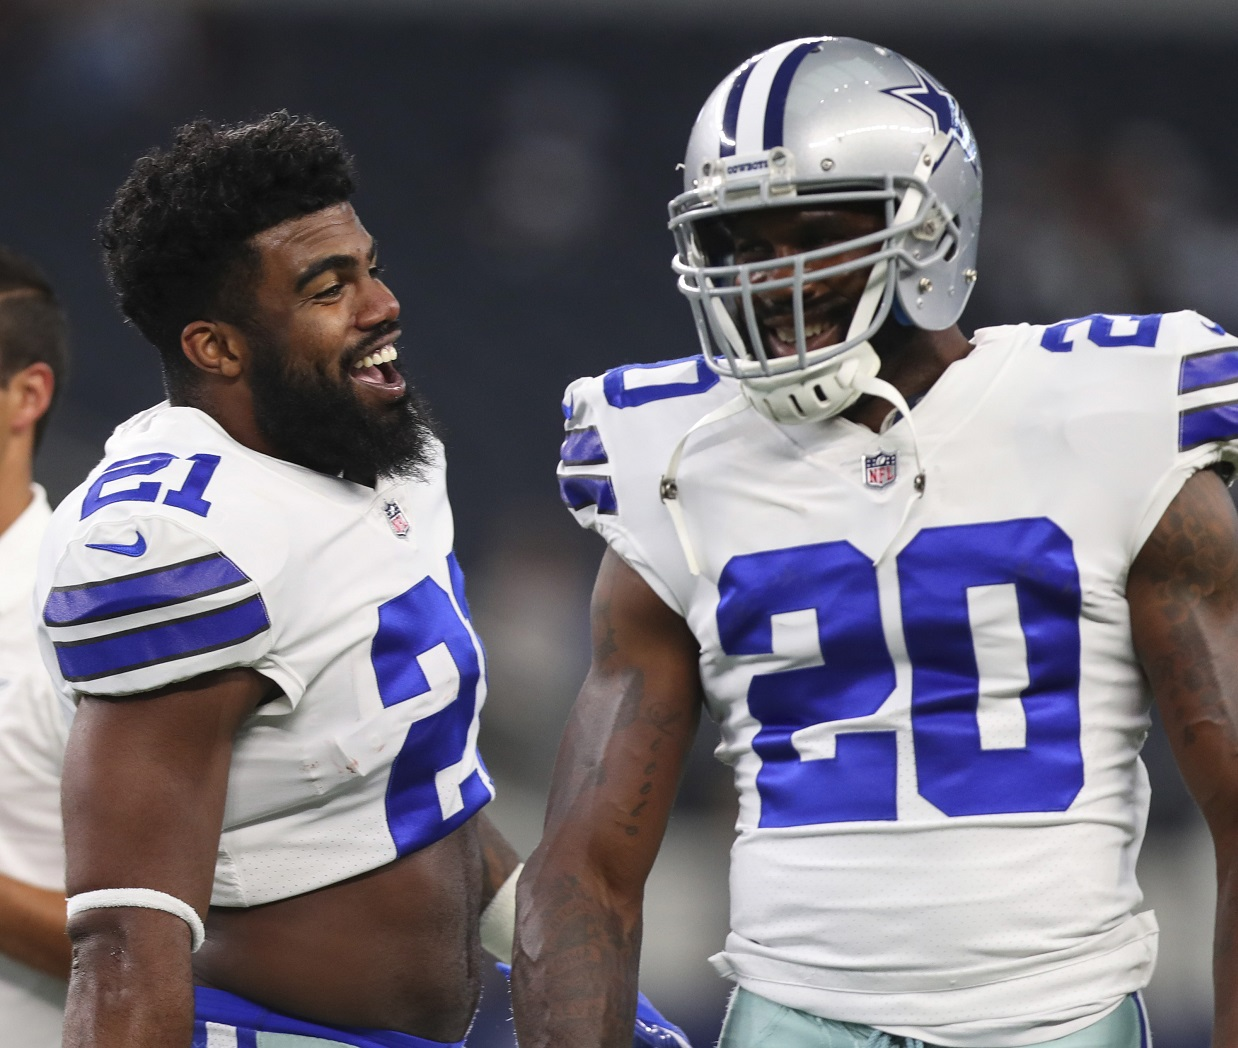 Ezekiel Elliott Eligible to Play Again ... But Suspension Still Looms